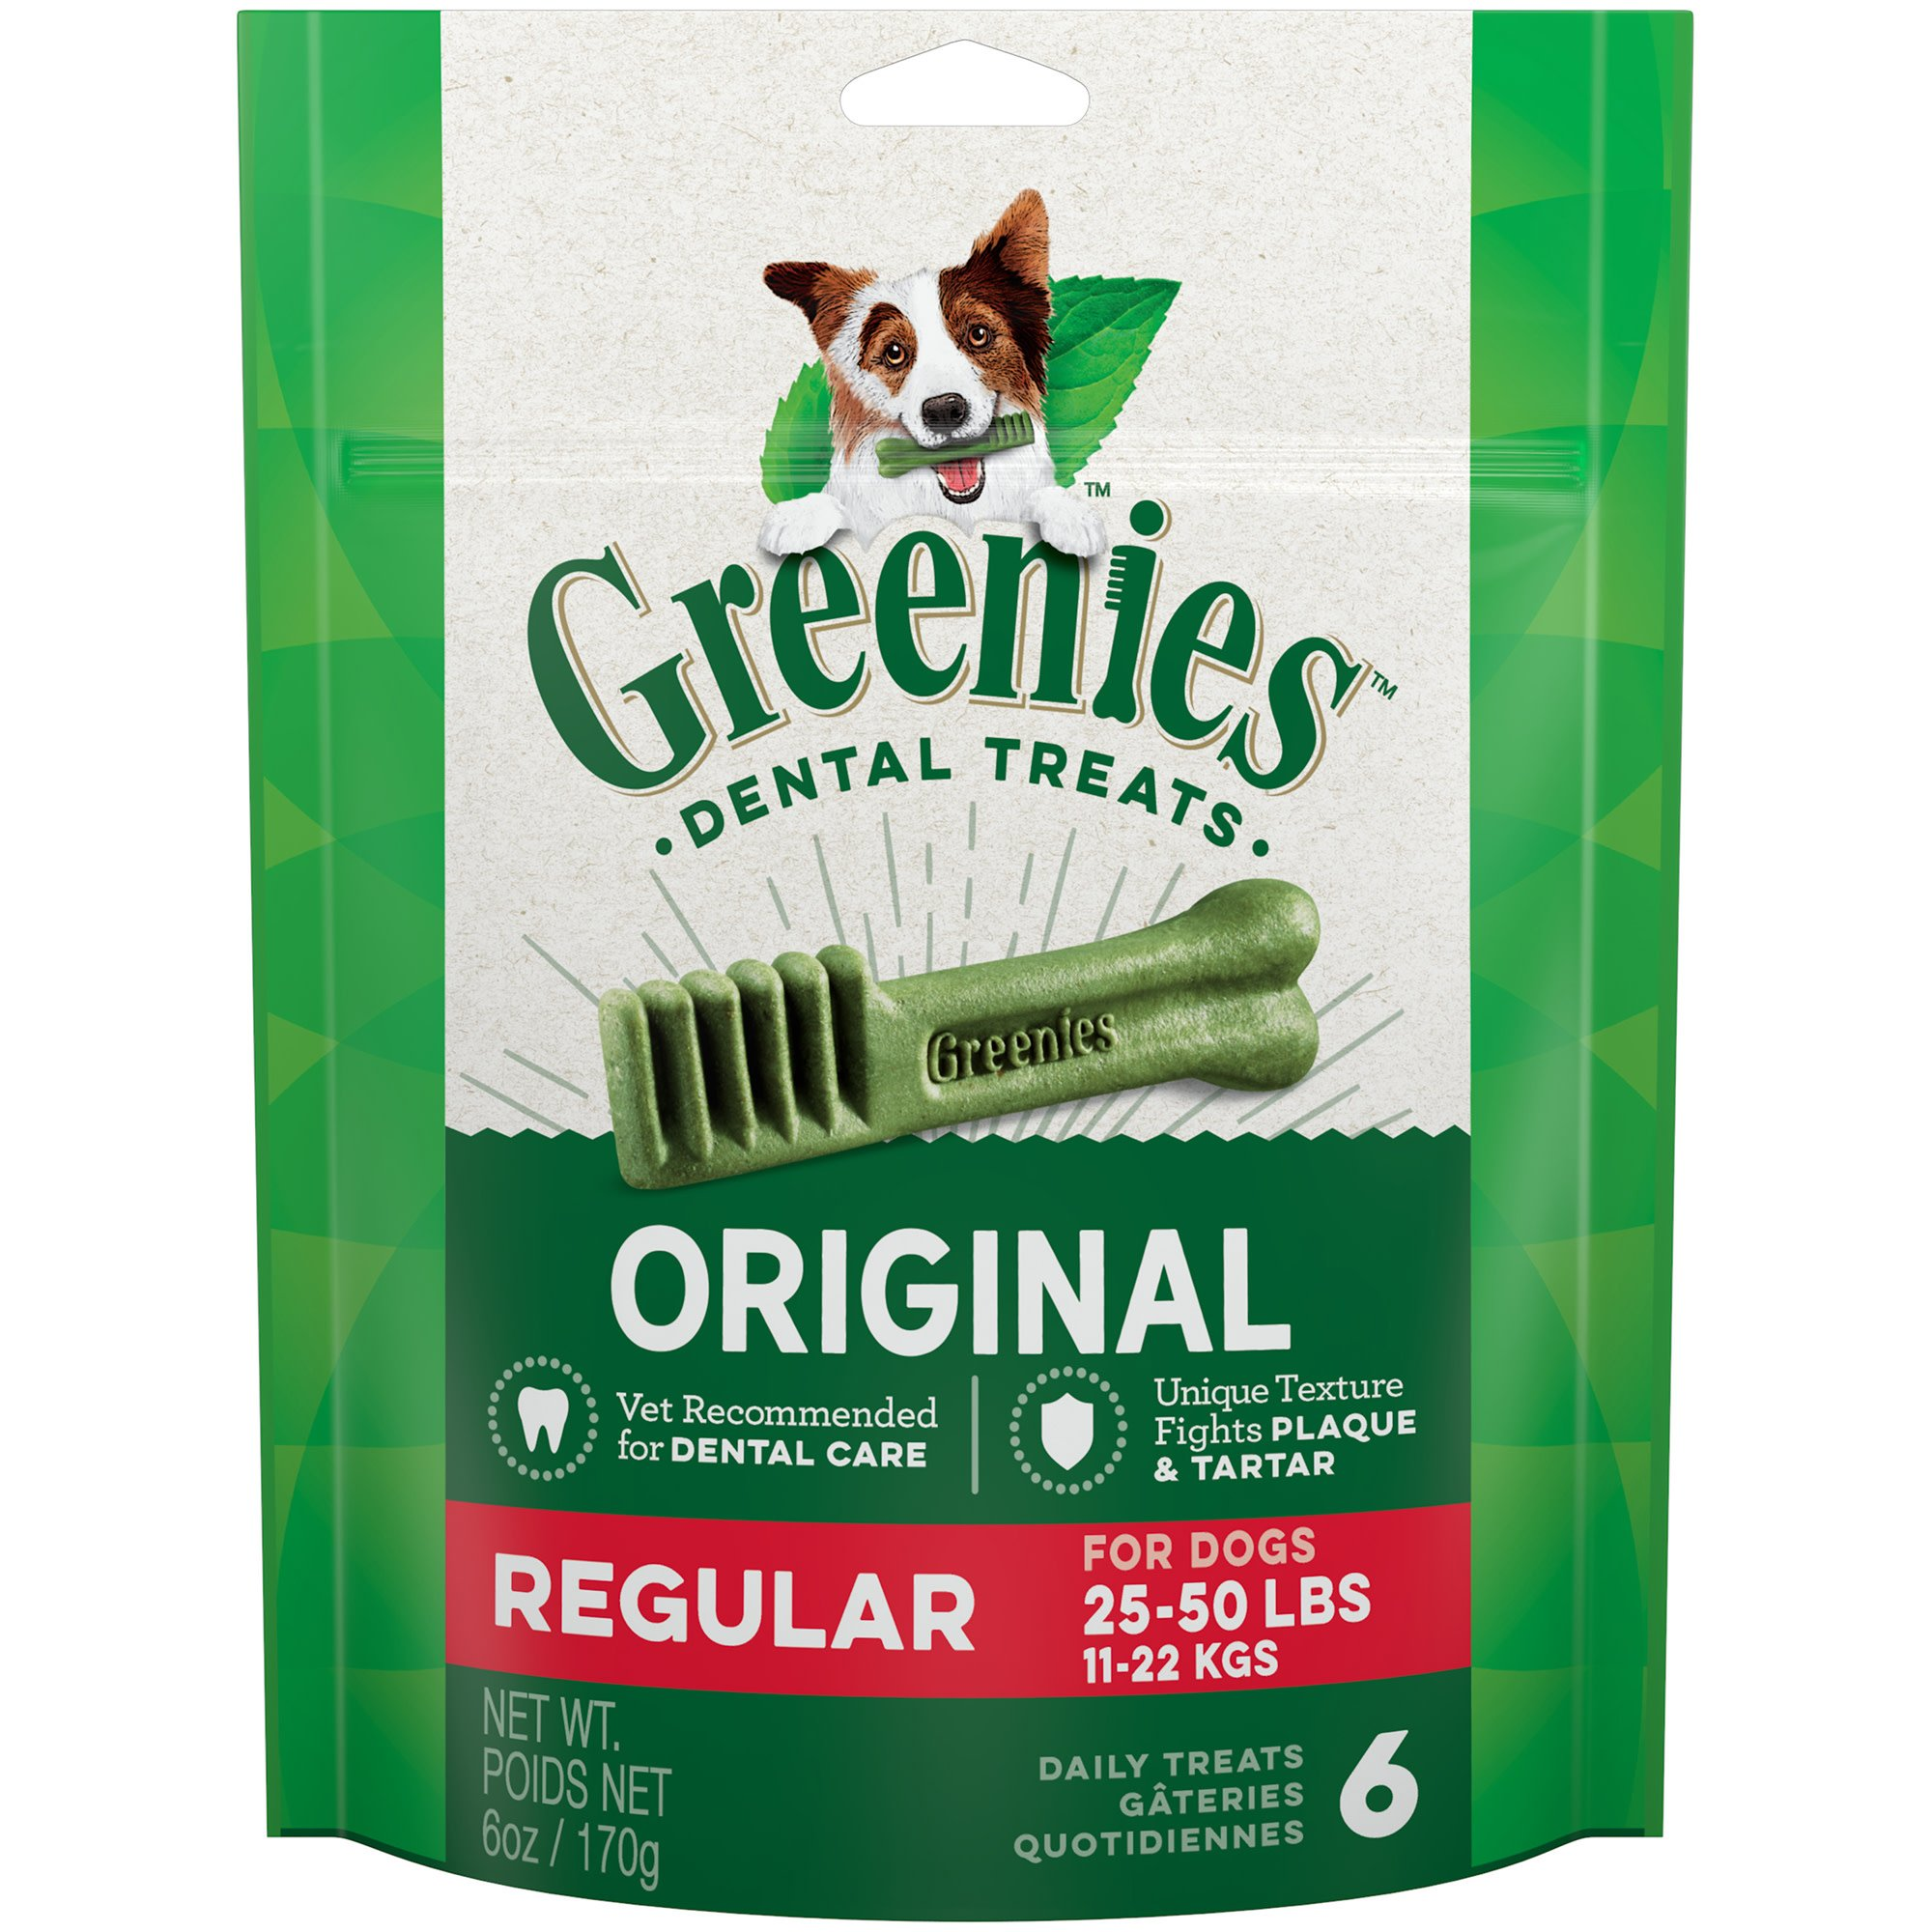 Greenies Original Regular Dental Dog Treats, 6-count